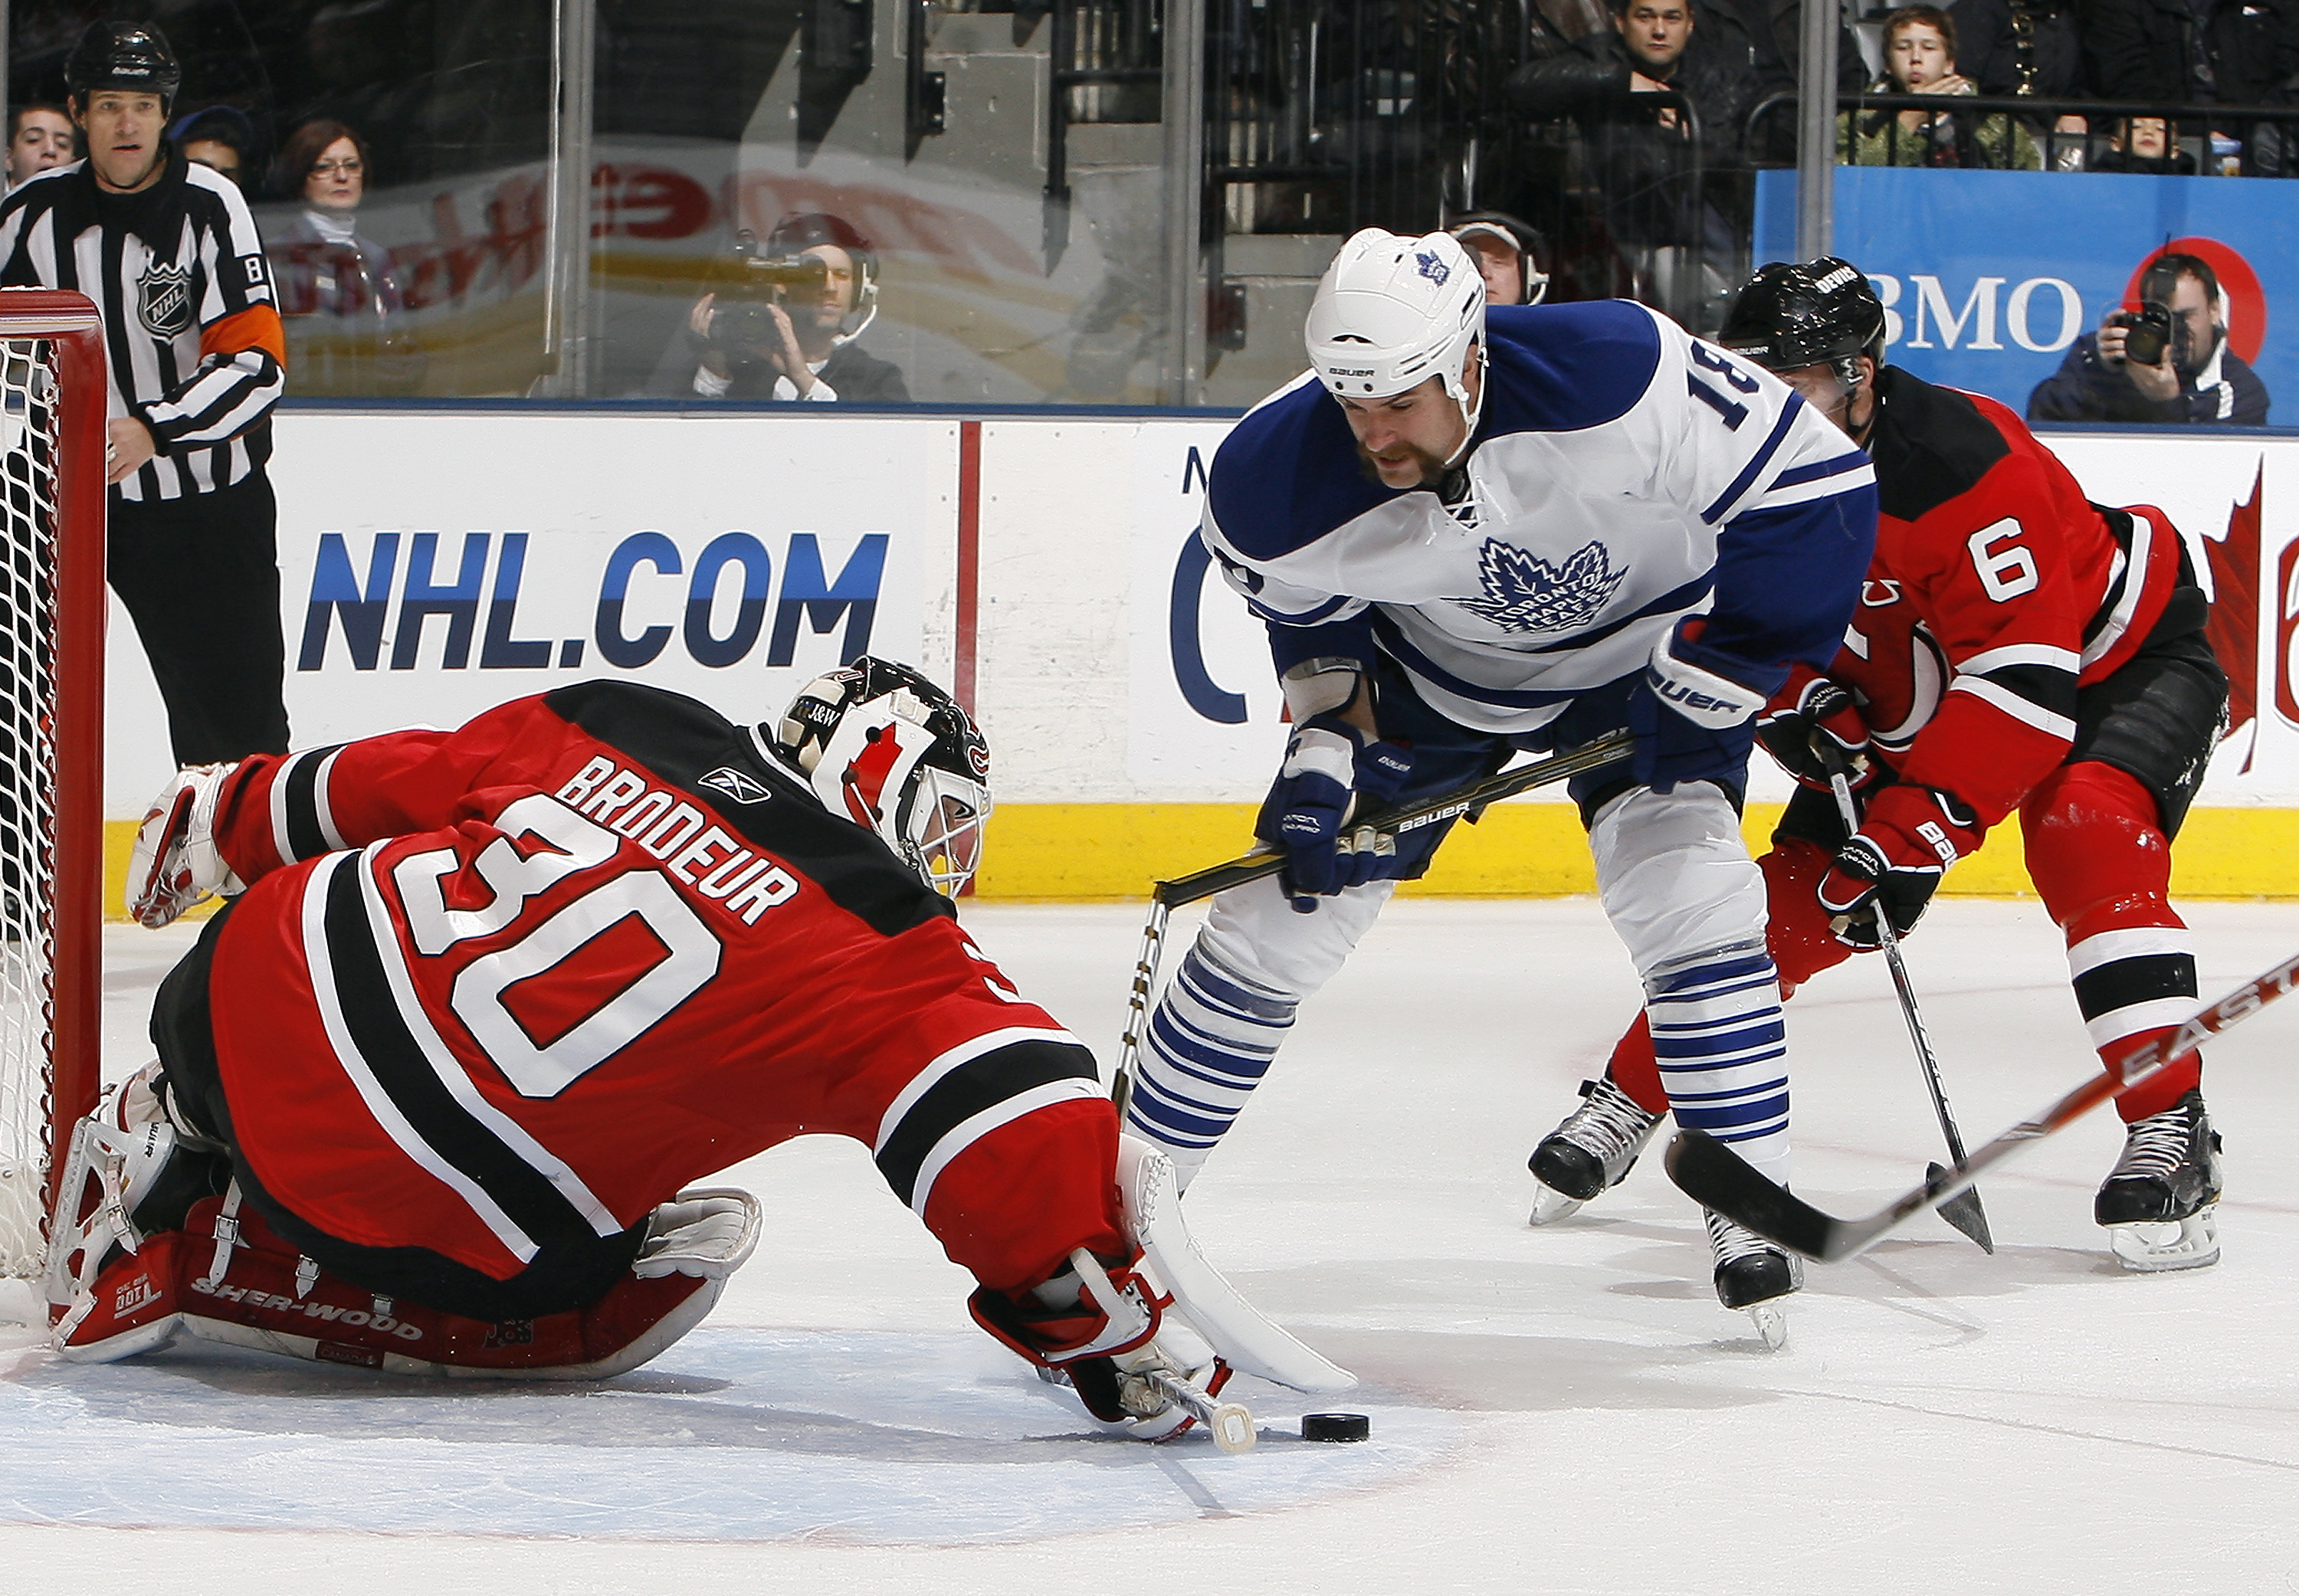 TORONTO - NOVEMBER 18: Mike Brown #18 of the Toronto Maple Leafs breaks his stick while getting around Martin Brodeur #30 of the New Jersey Devils during game action at the Air Canada Centre November 18, 2010 in Toronto, Ontario, Canada. (Photo by Abelima